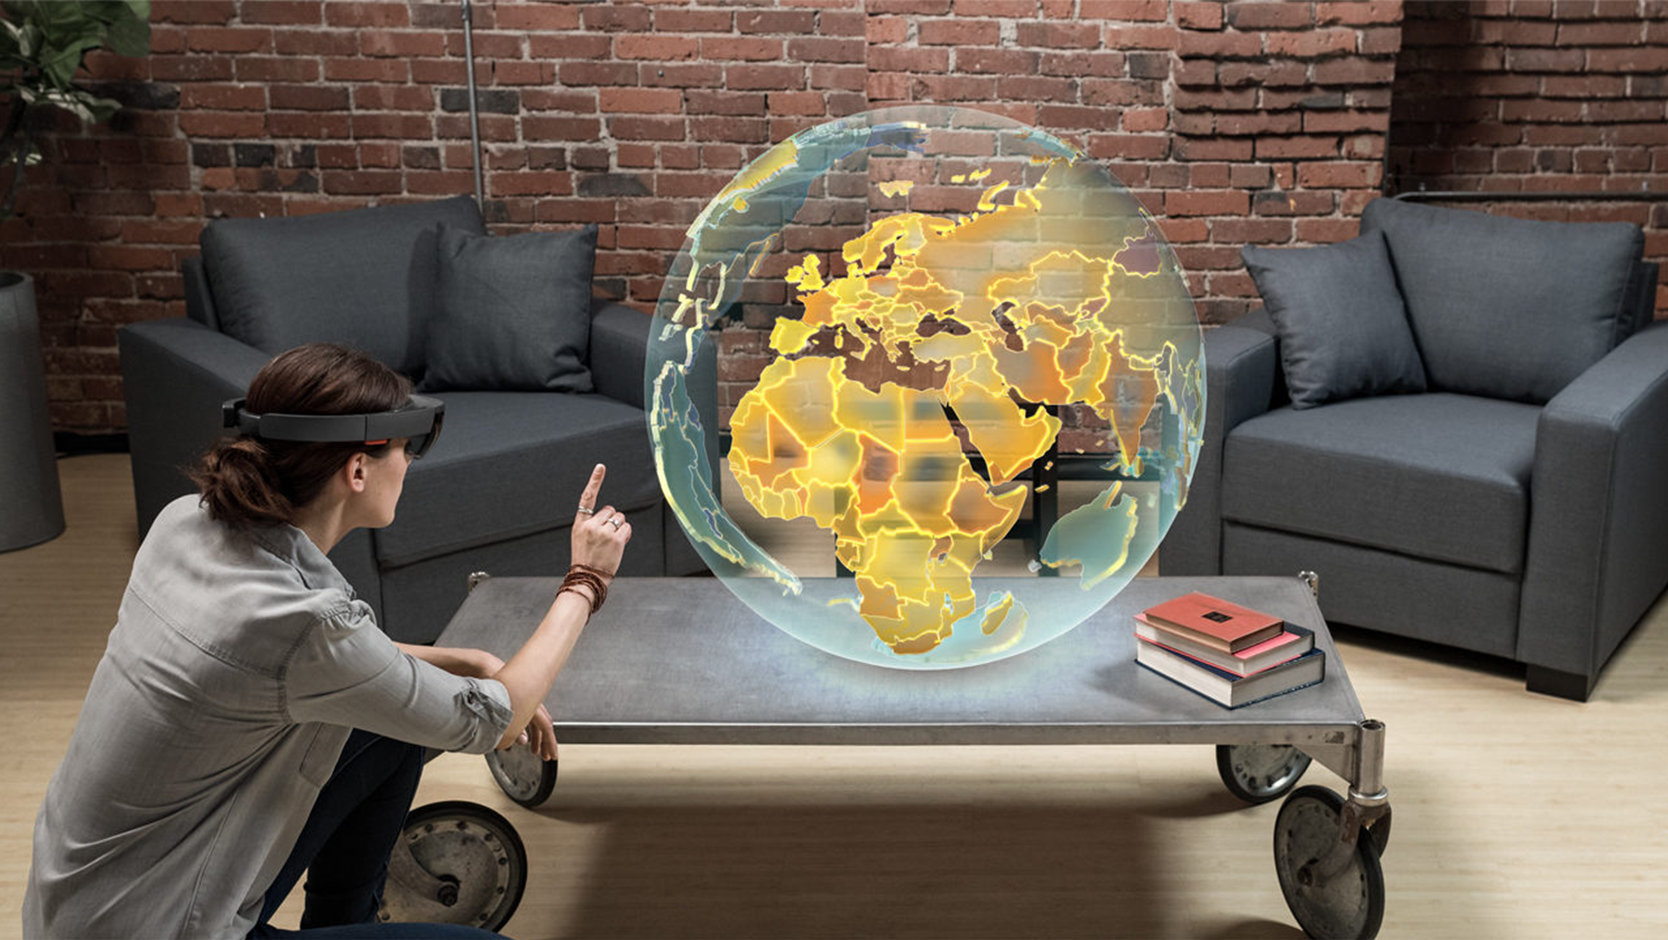 Woman using HoloLens to interact with the globe